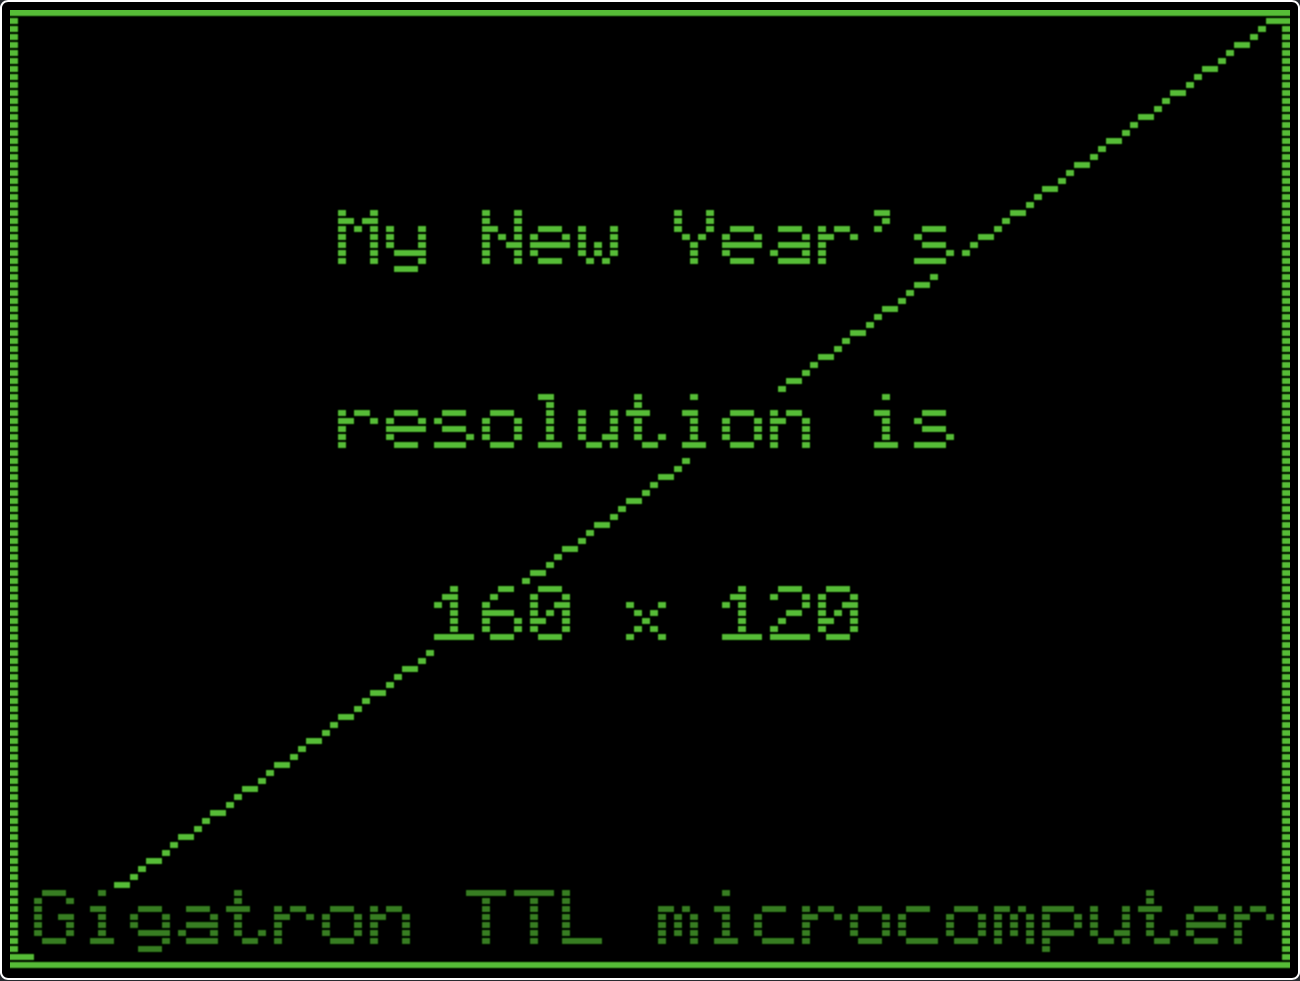 resolution.png